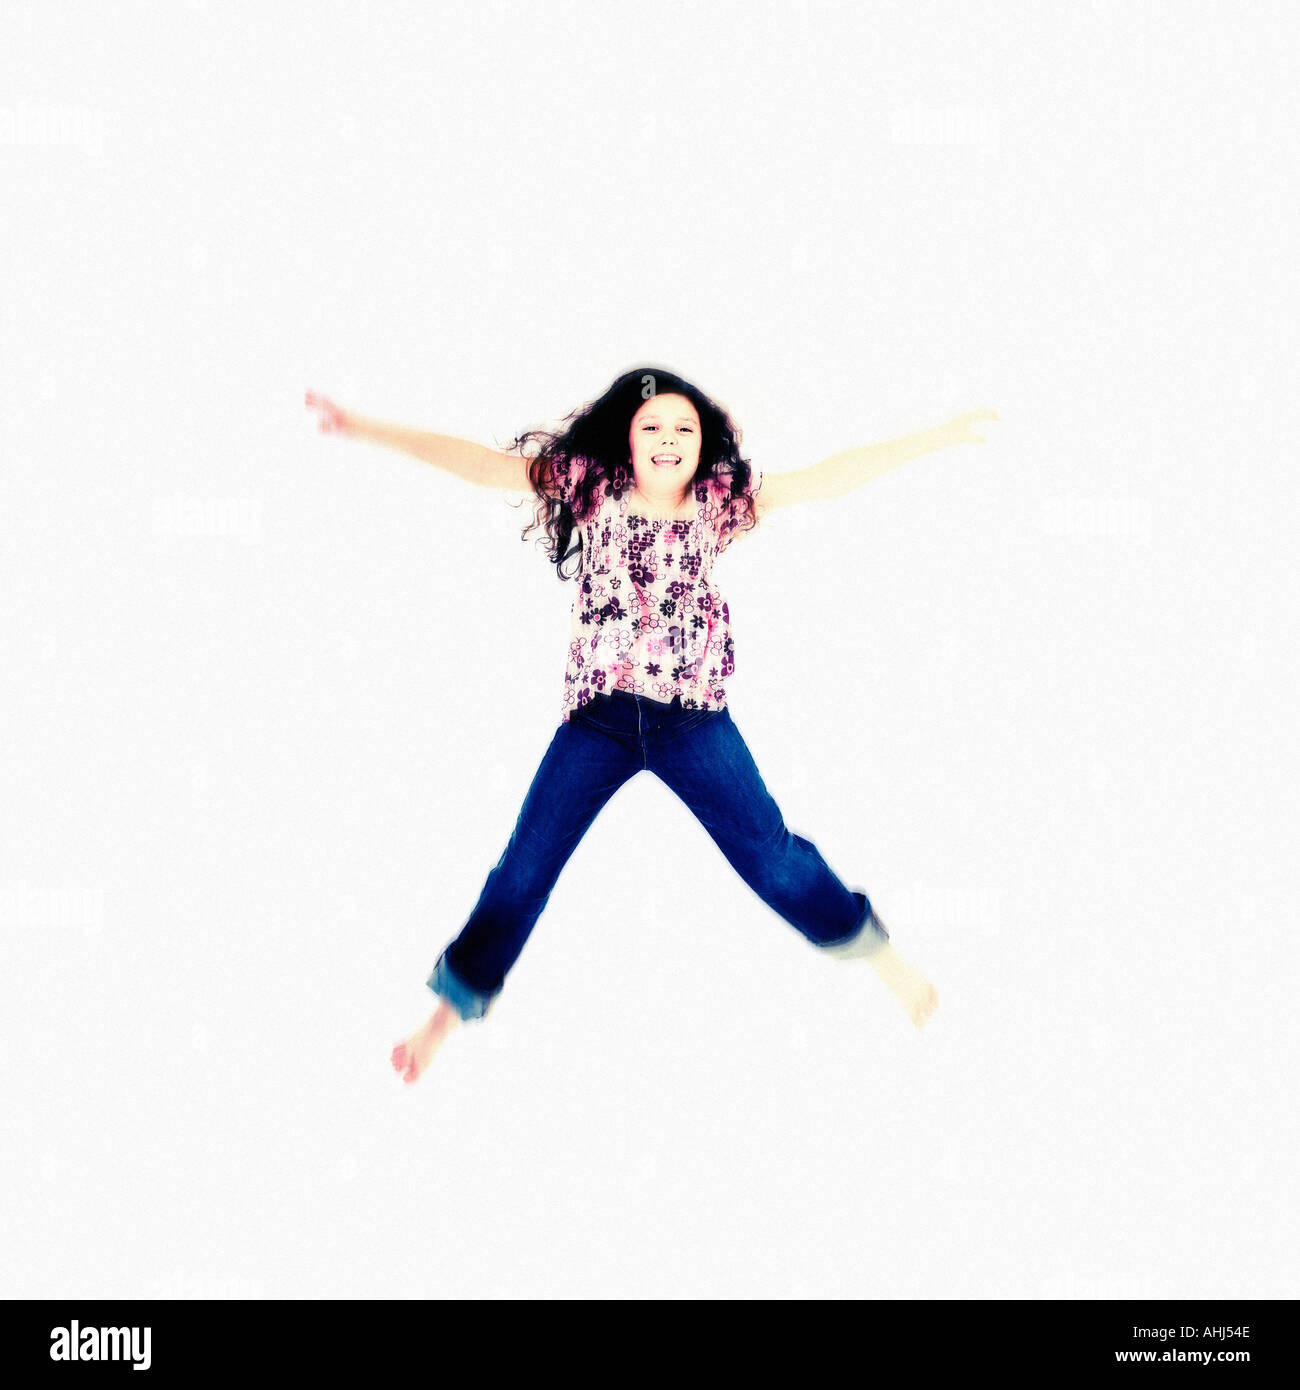 Girl doing star jump in air against white background - Stock Image